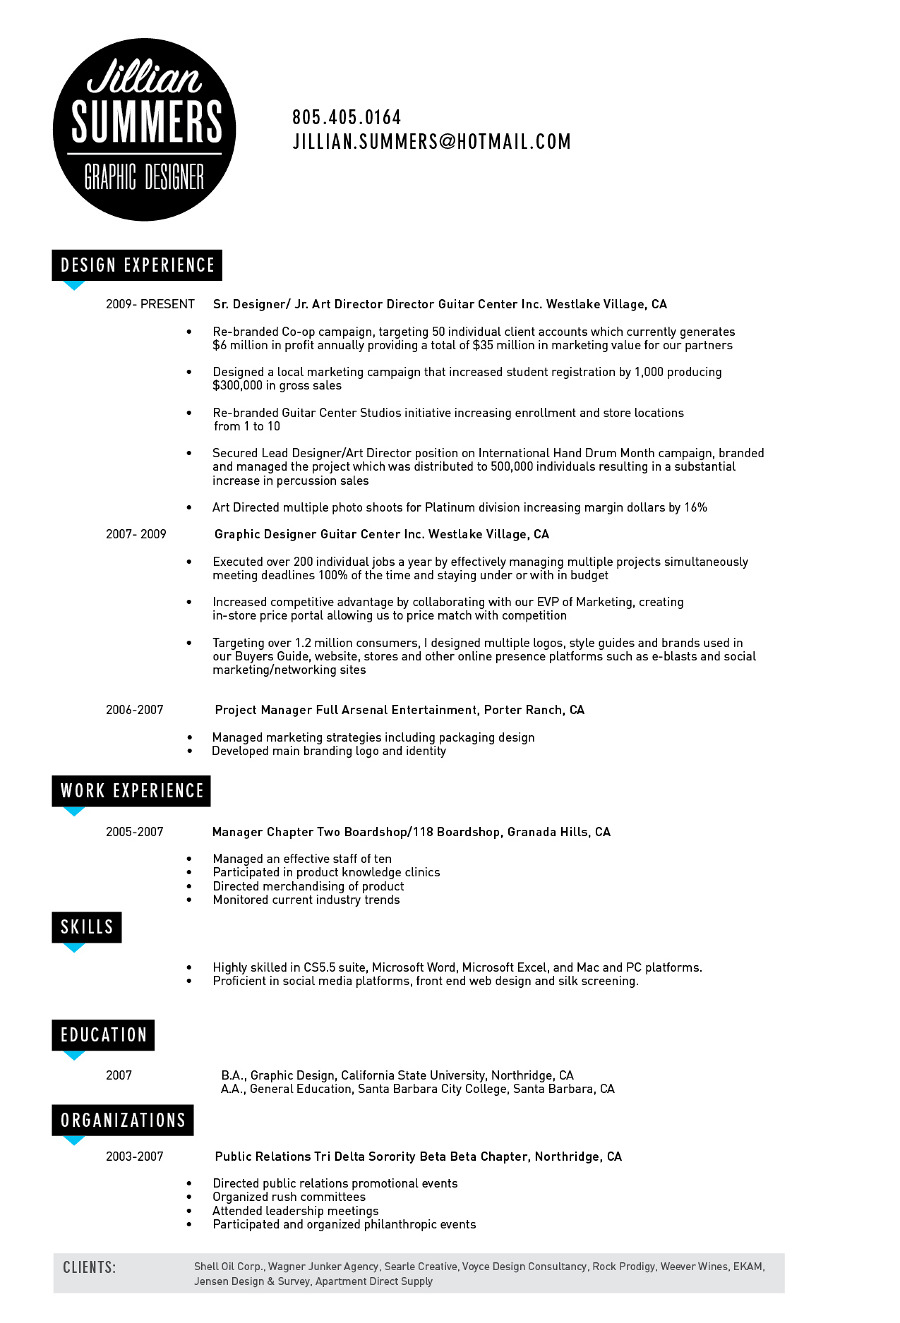 Examples Of Creative Graphic Design Resumes Inspirationfeed